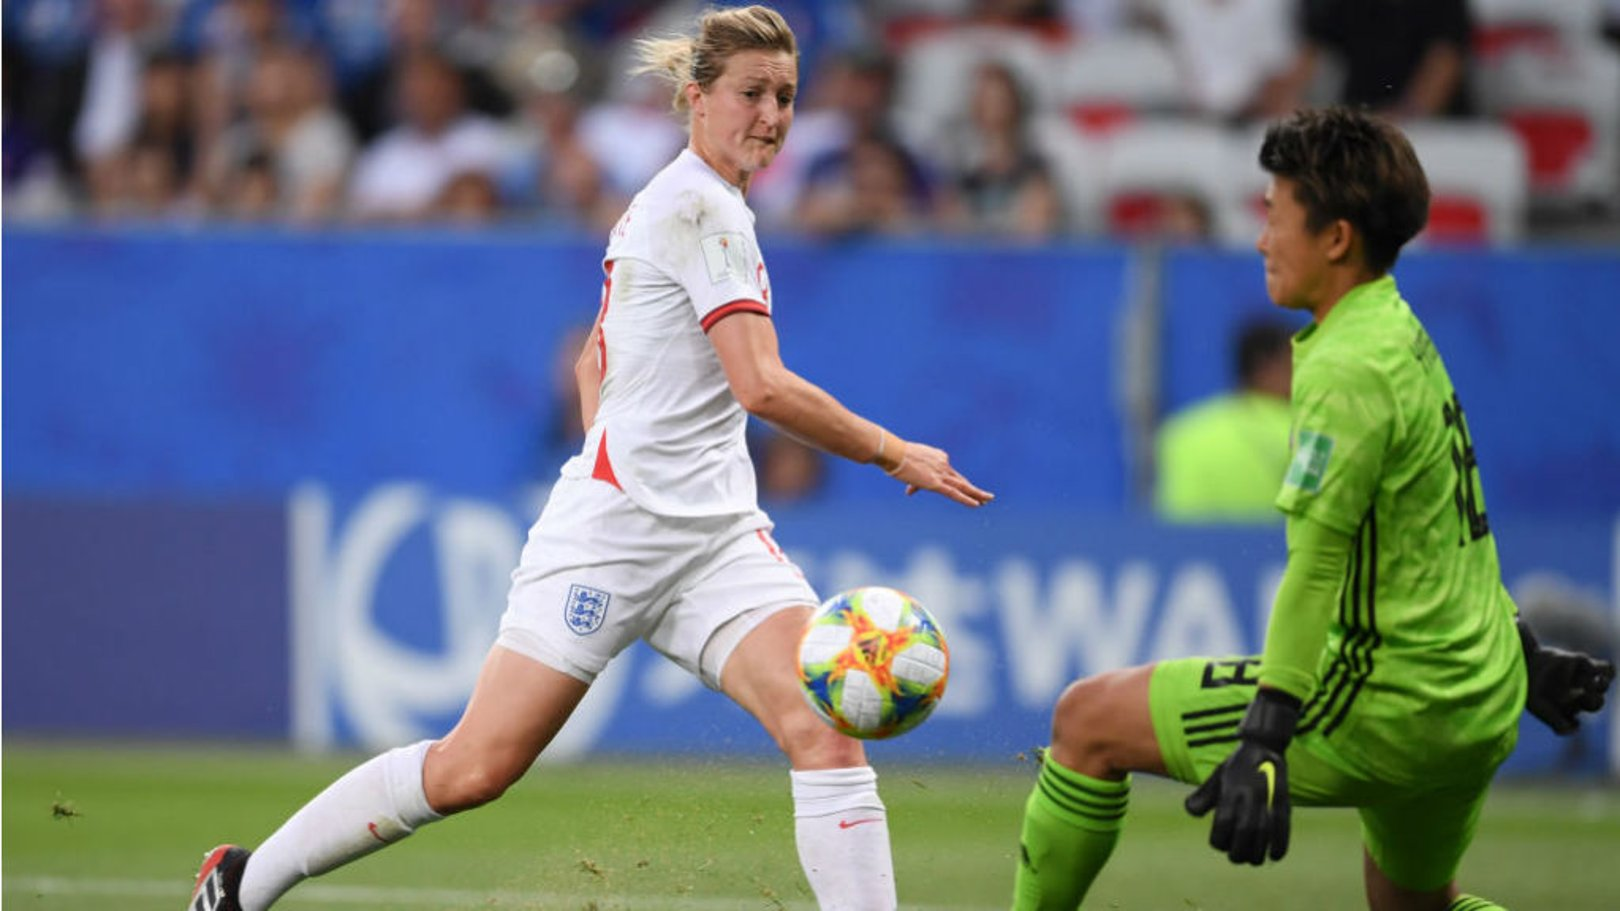 ON THE MARK: Ellen White fires England ahead against Japan